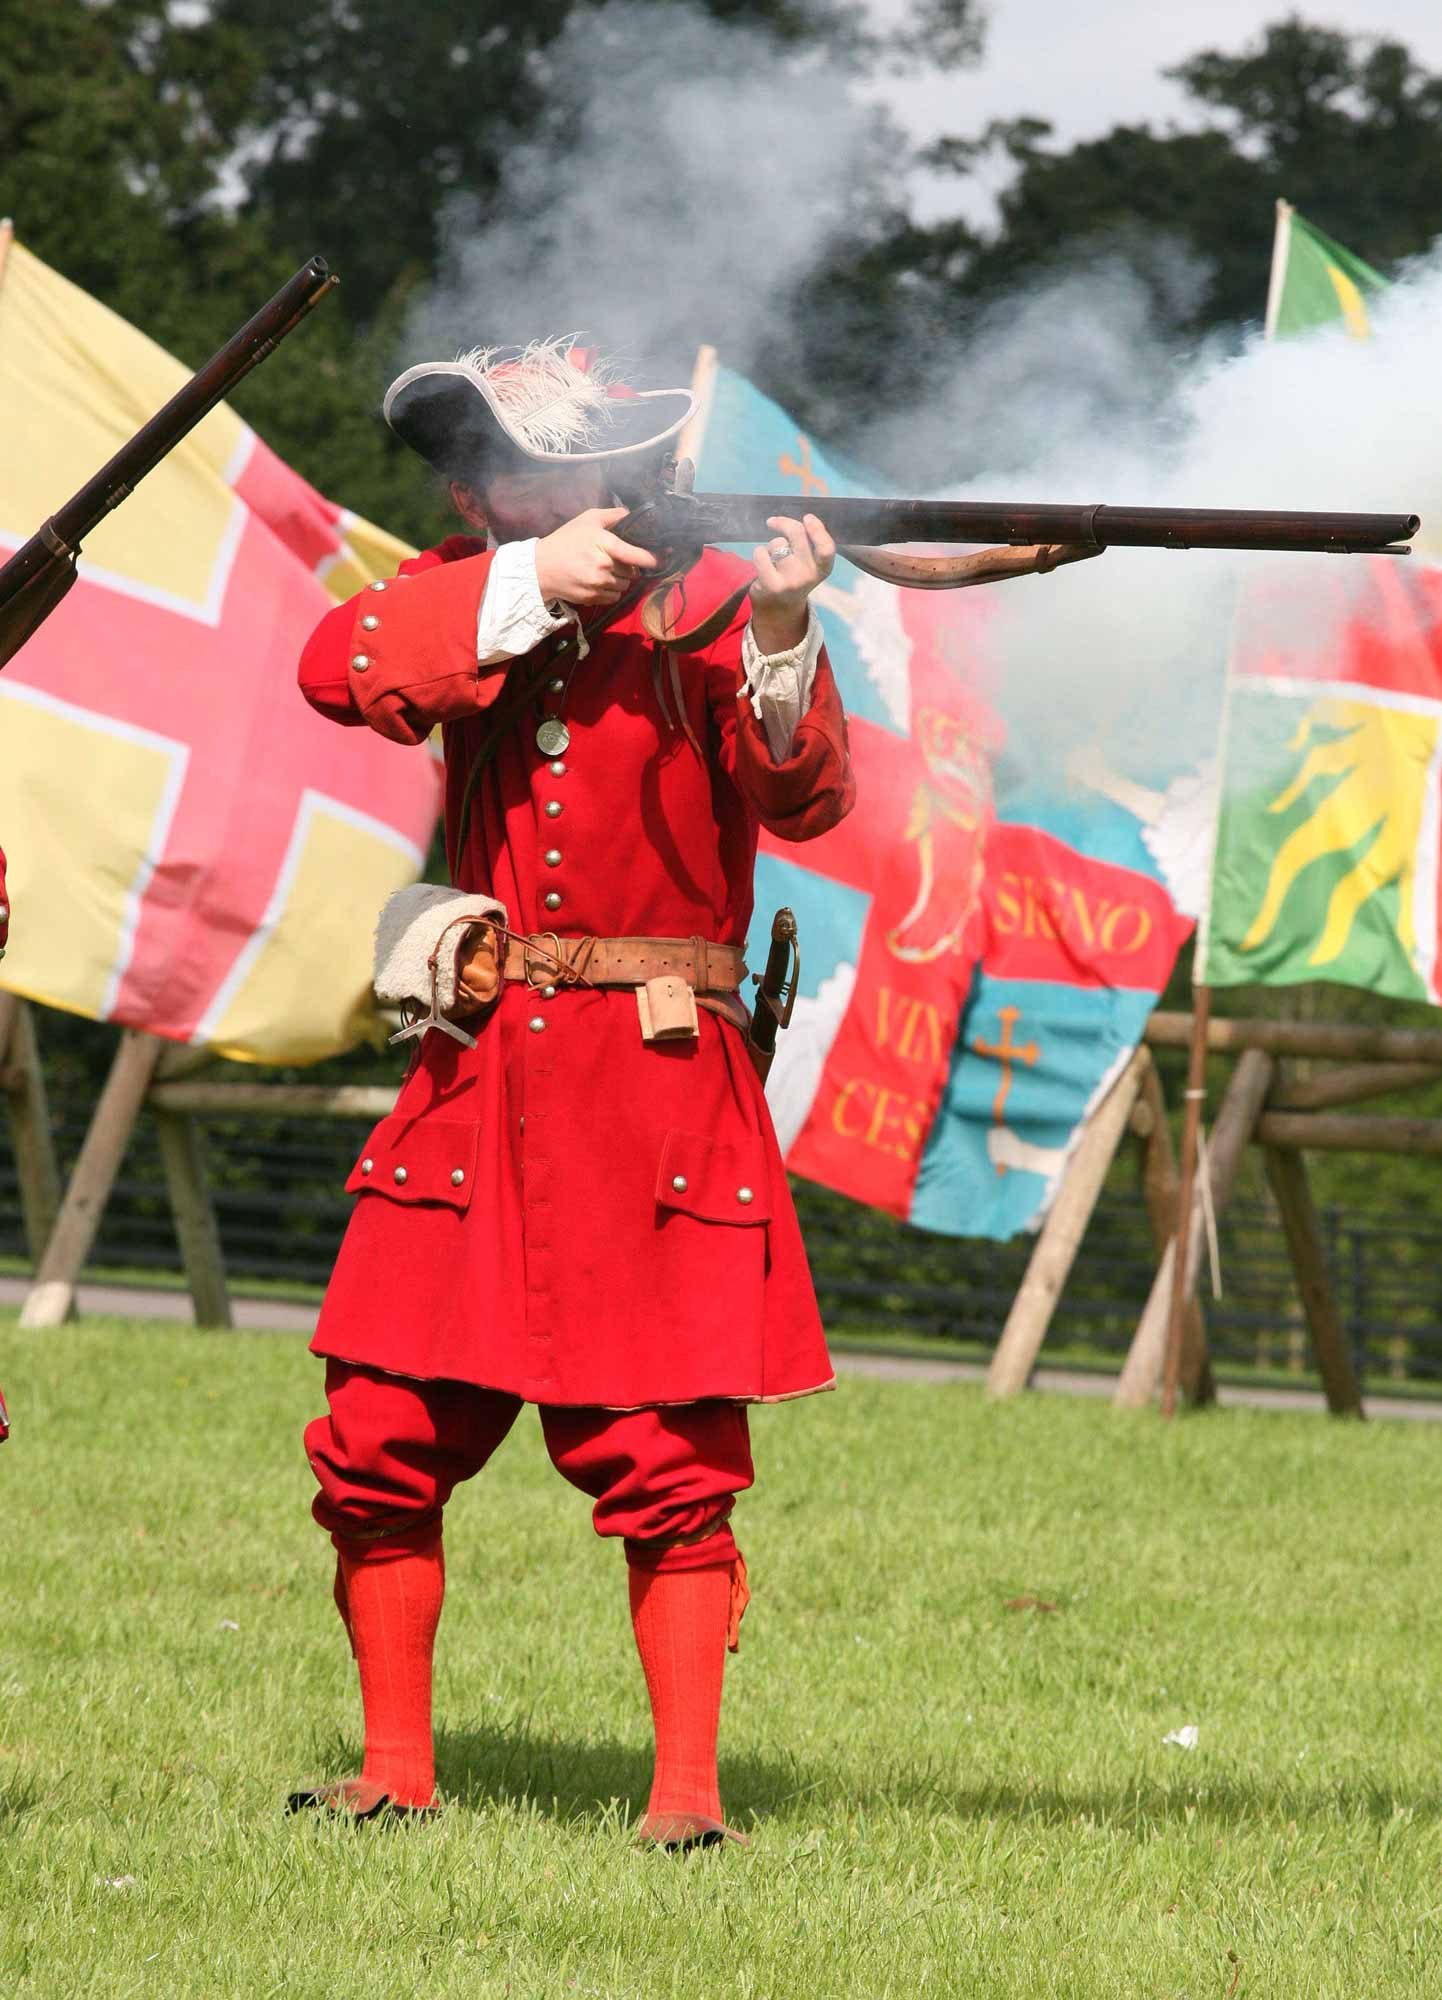 Musket firing display